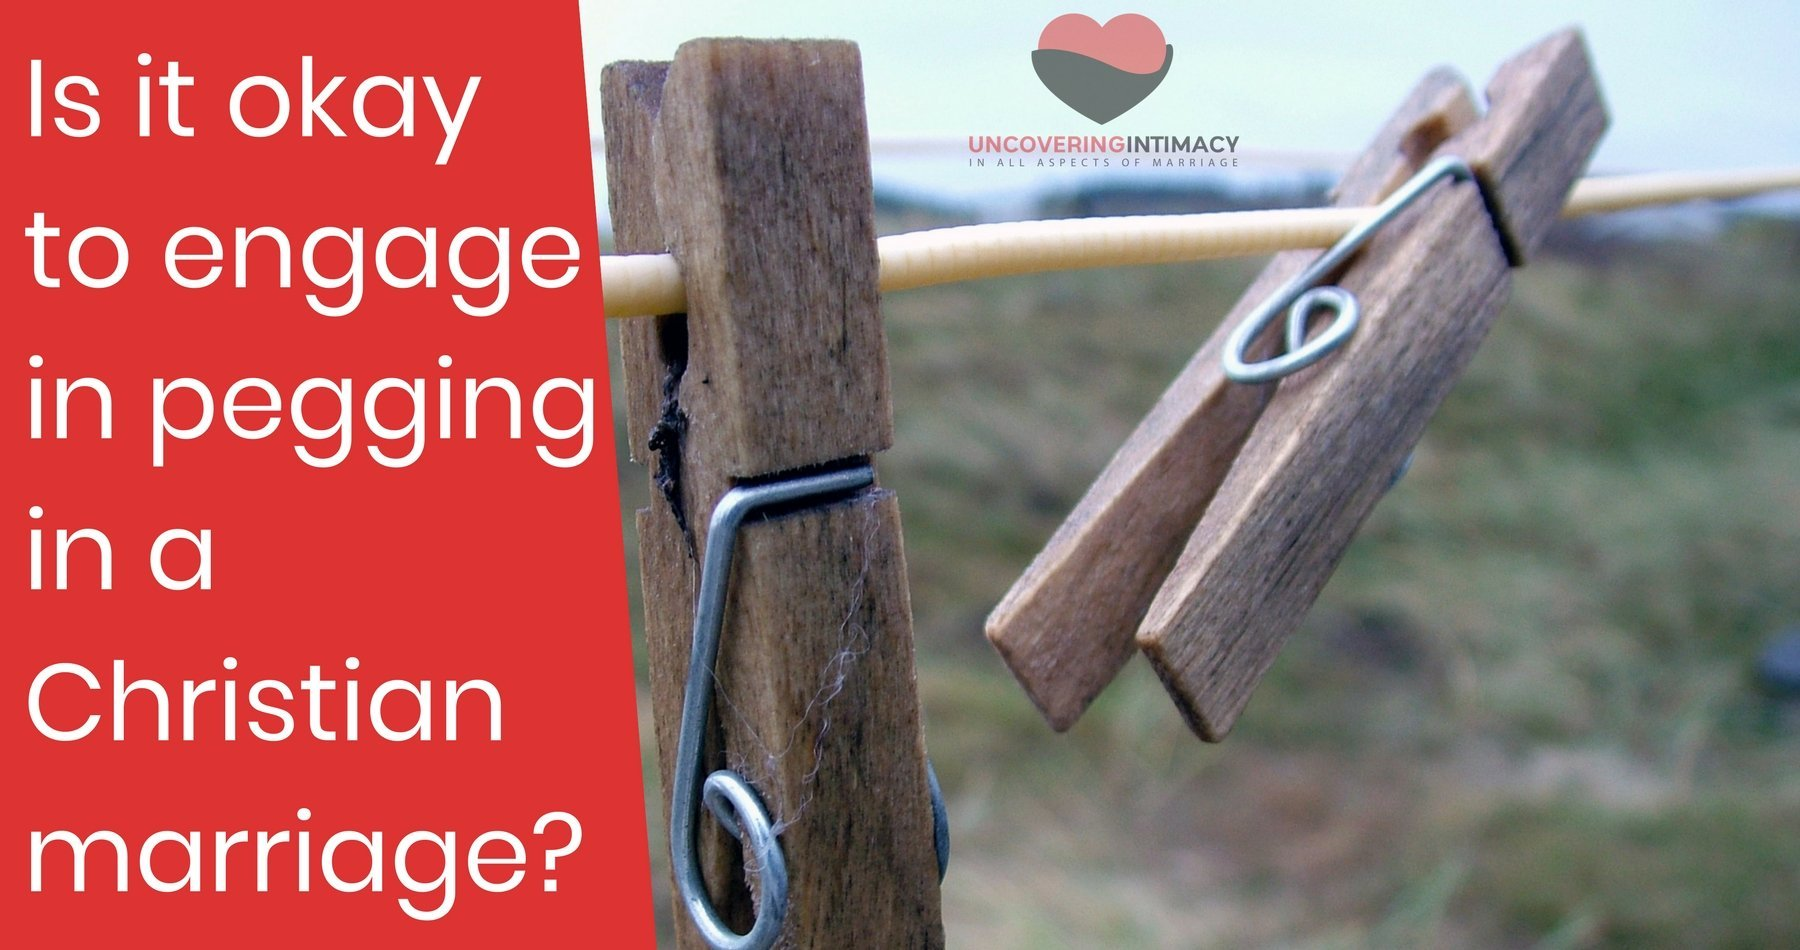 Pegging in marriage